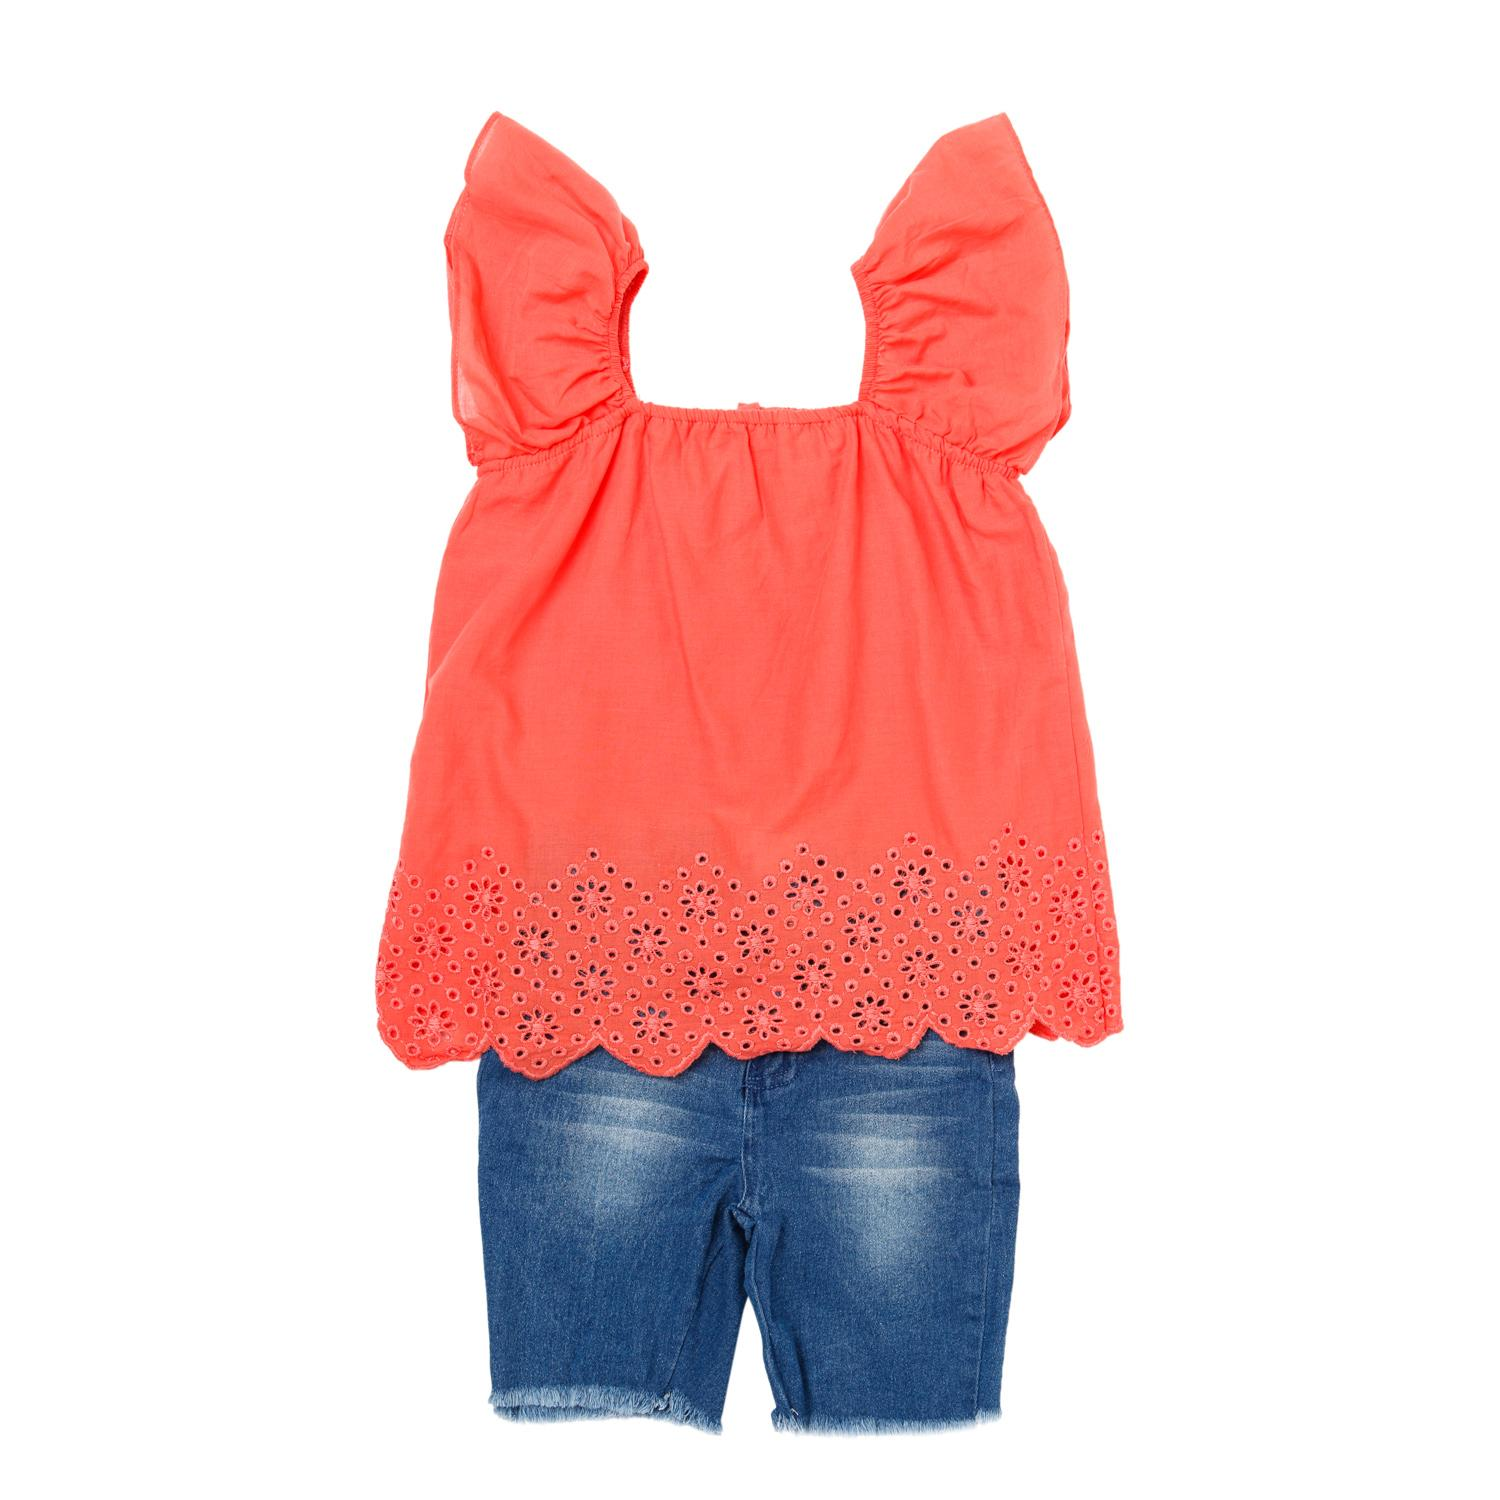 Justees Girls Eyelet Top And Shorts Set In Salmon By The Sm Store